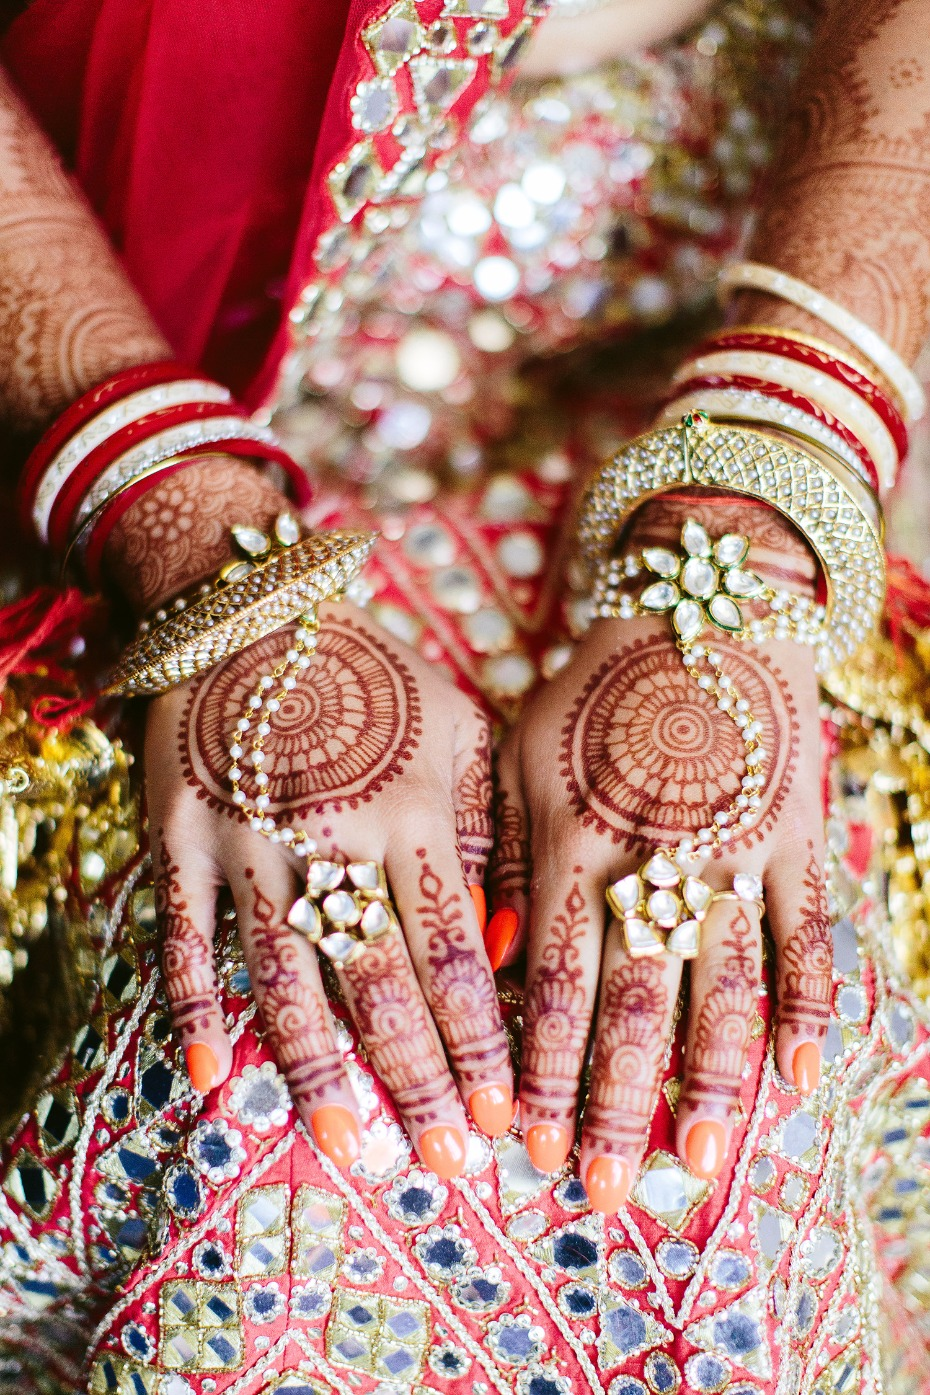 Stunning bridal jewelry and henna